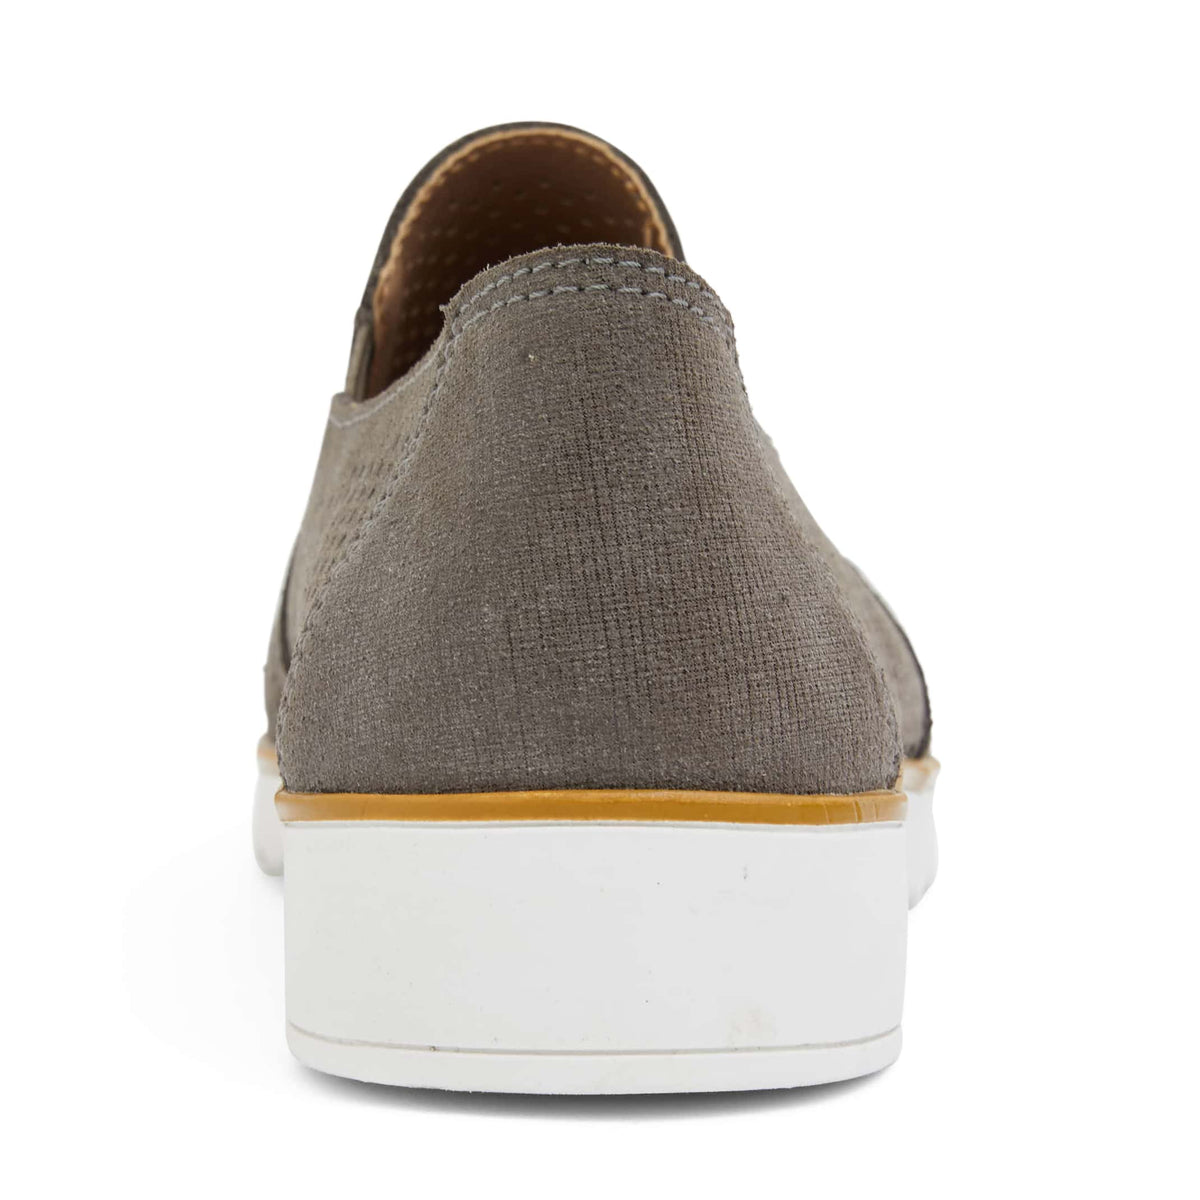 Davis Sneaker in Khaki Leather